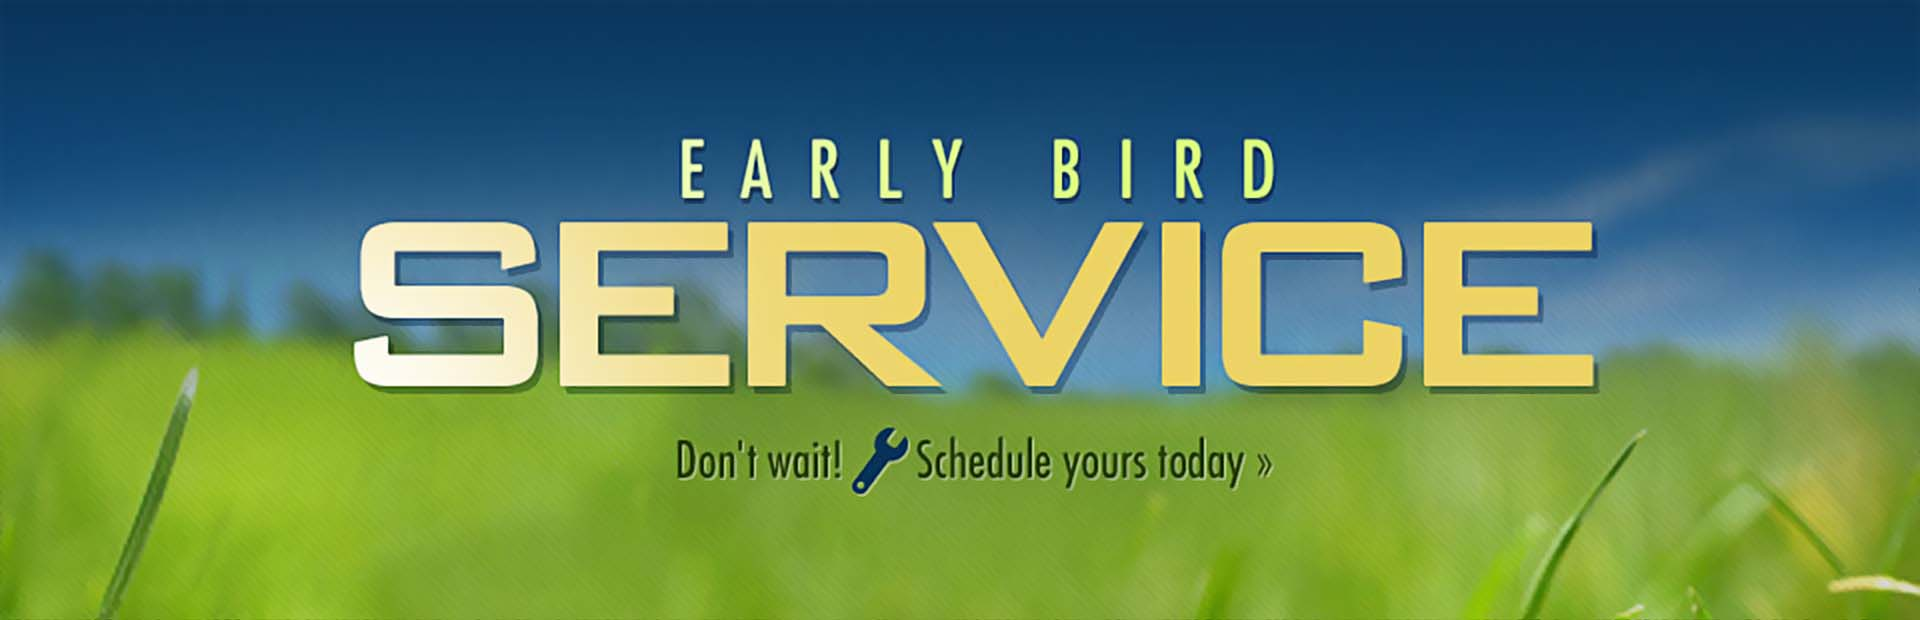 Early Bird Service: Click here to schedule your appointment.